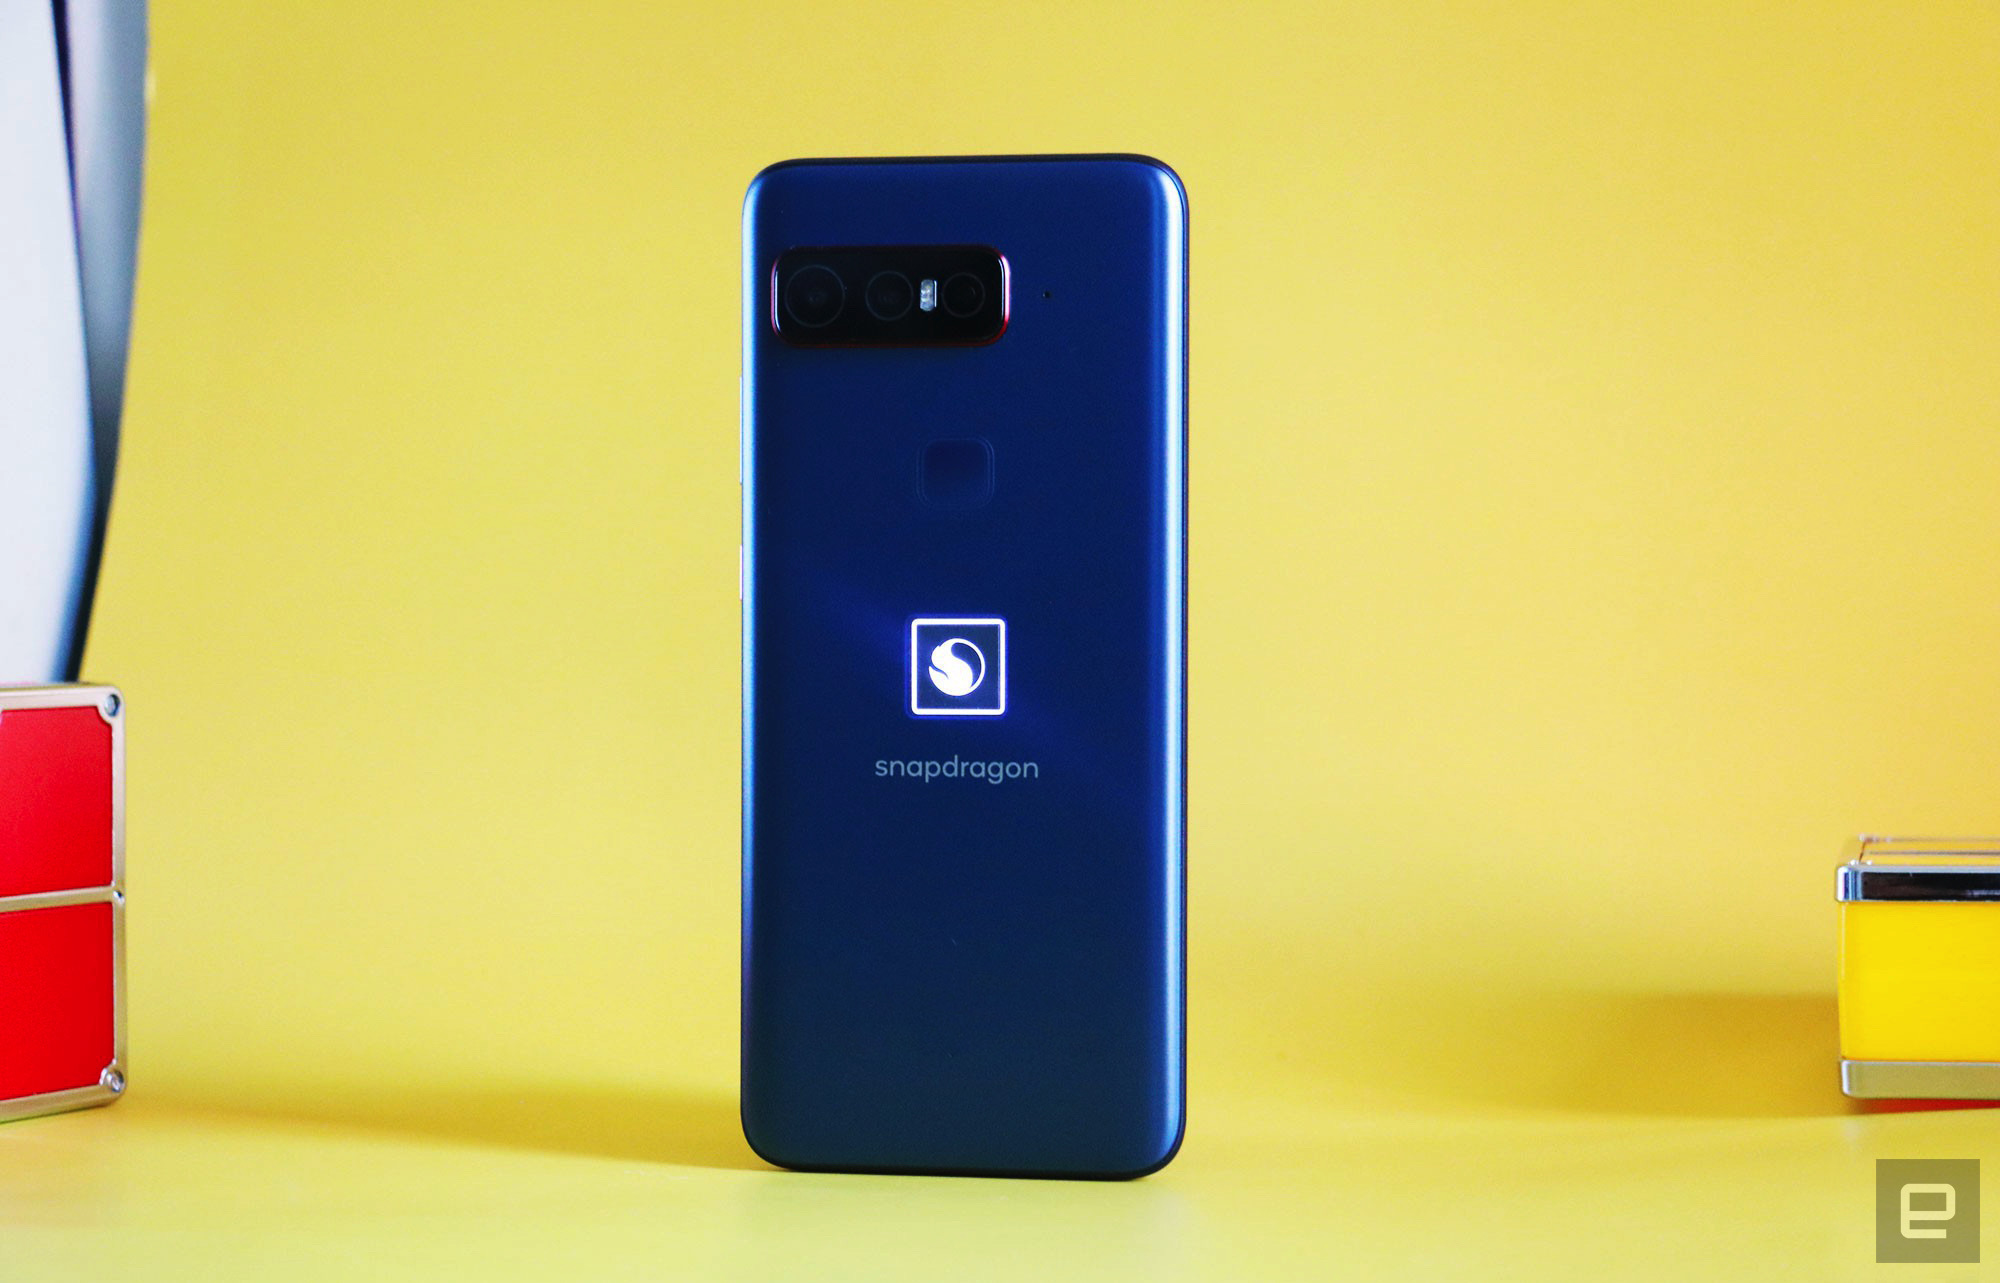 Smartphone for Snapdragon Insiders review: Not for most people